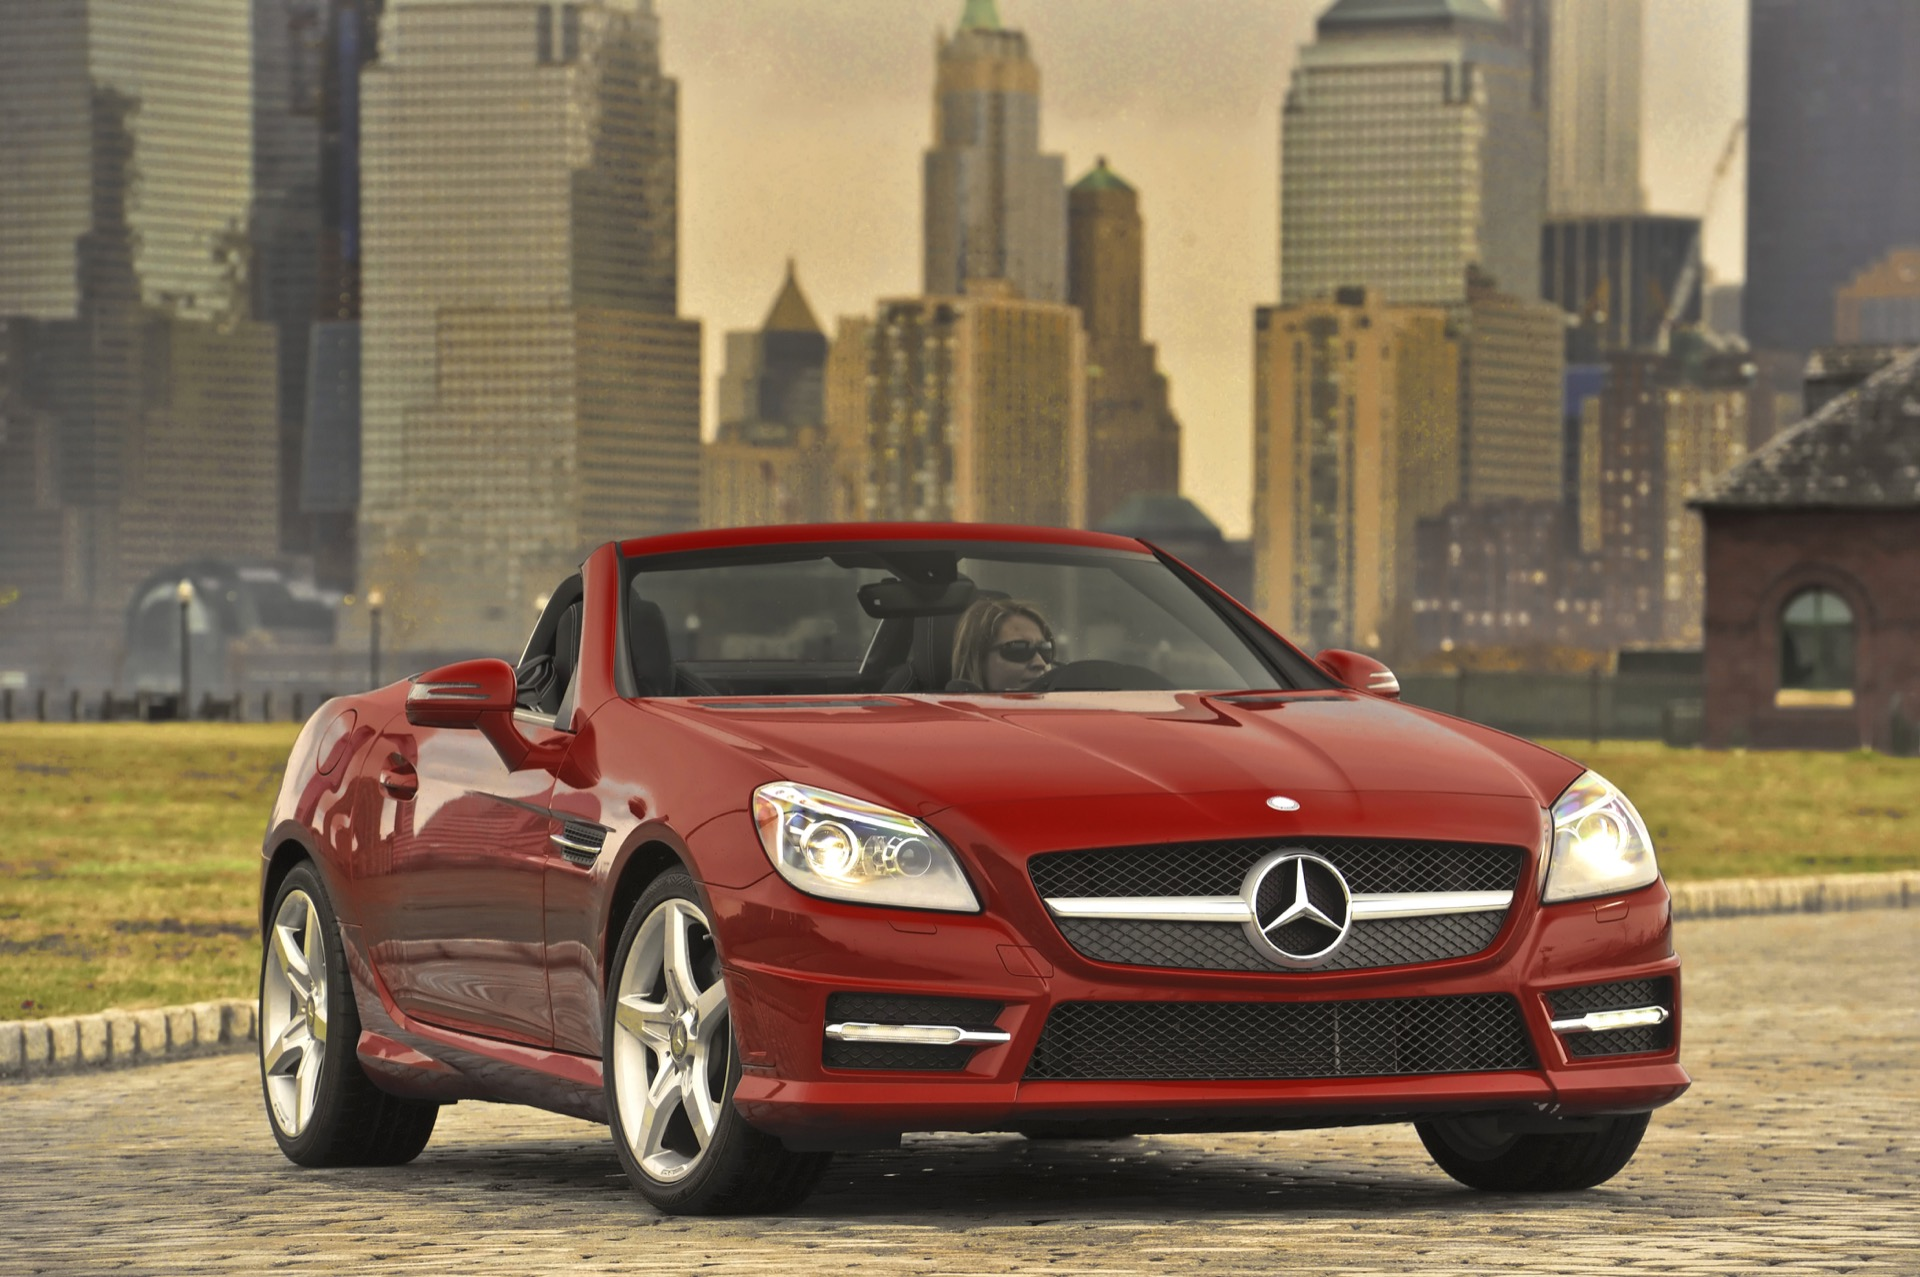 2016 mercedes benz slk class styling review the car connection. Black Bedroom Furniture Sets. Home Design Ideas